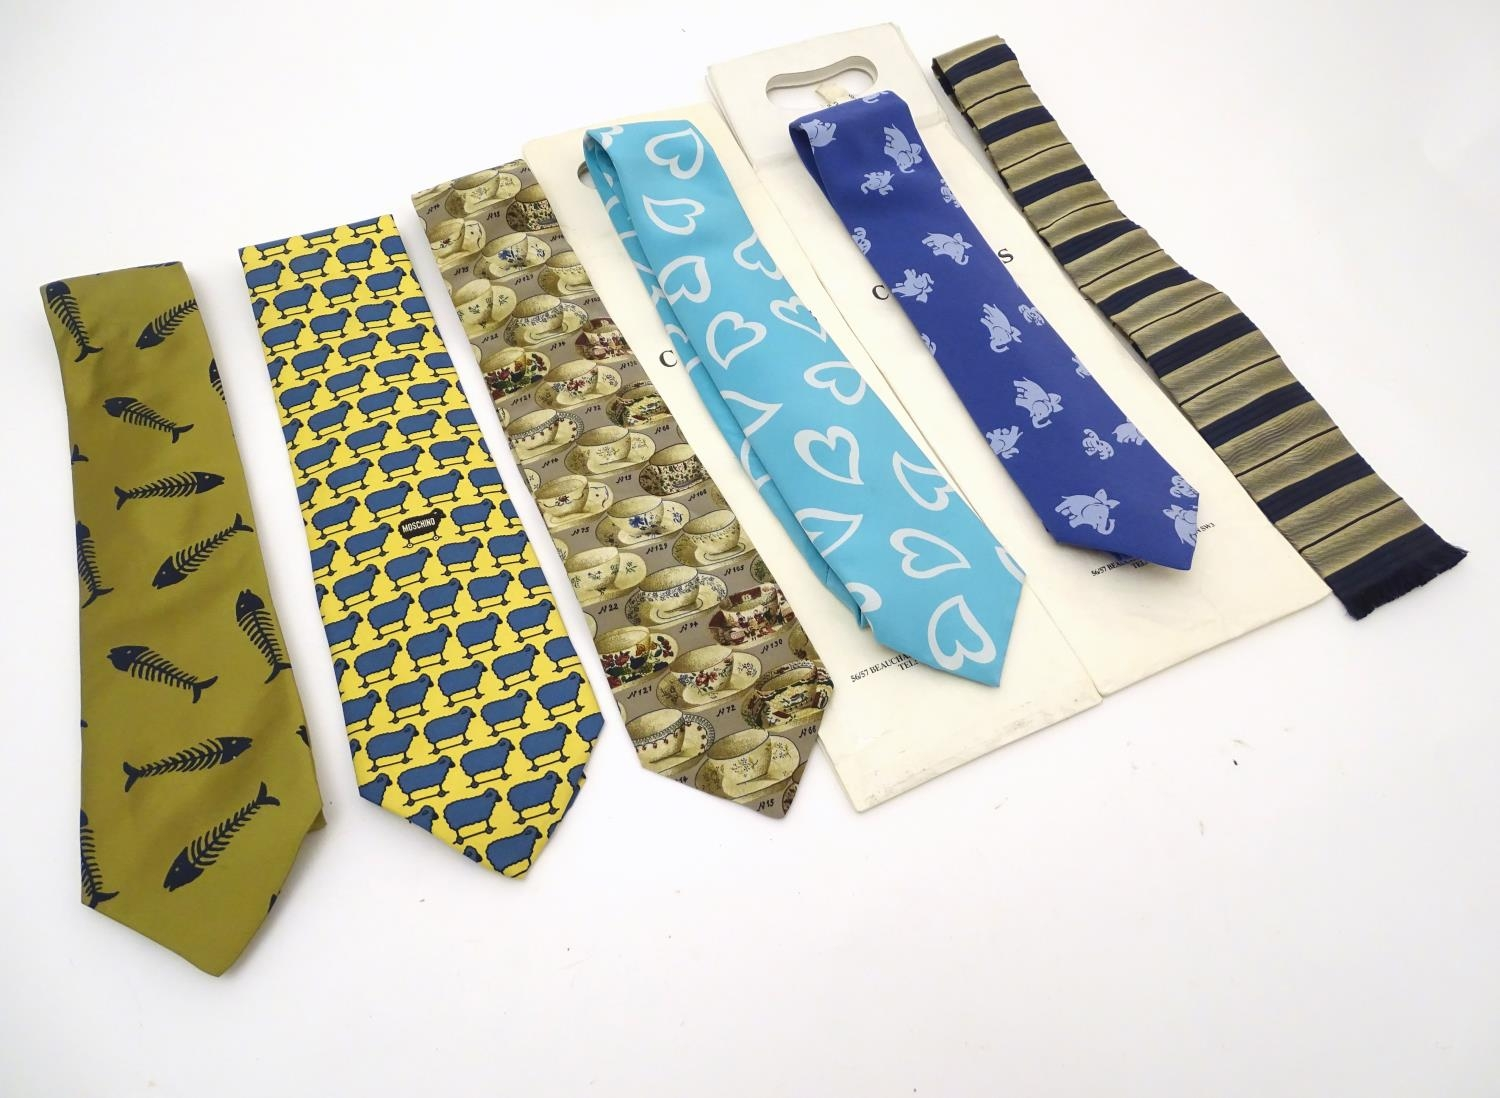 Vintage clothing/ fashion: 6 silk ties in various colours and patterns by Yves Saint Laurent, Nicole - Image 3 of 10